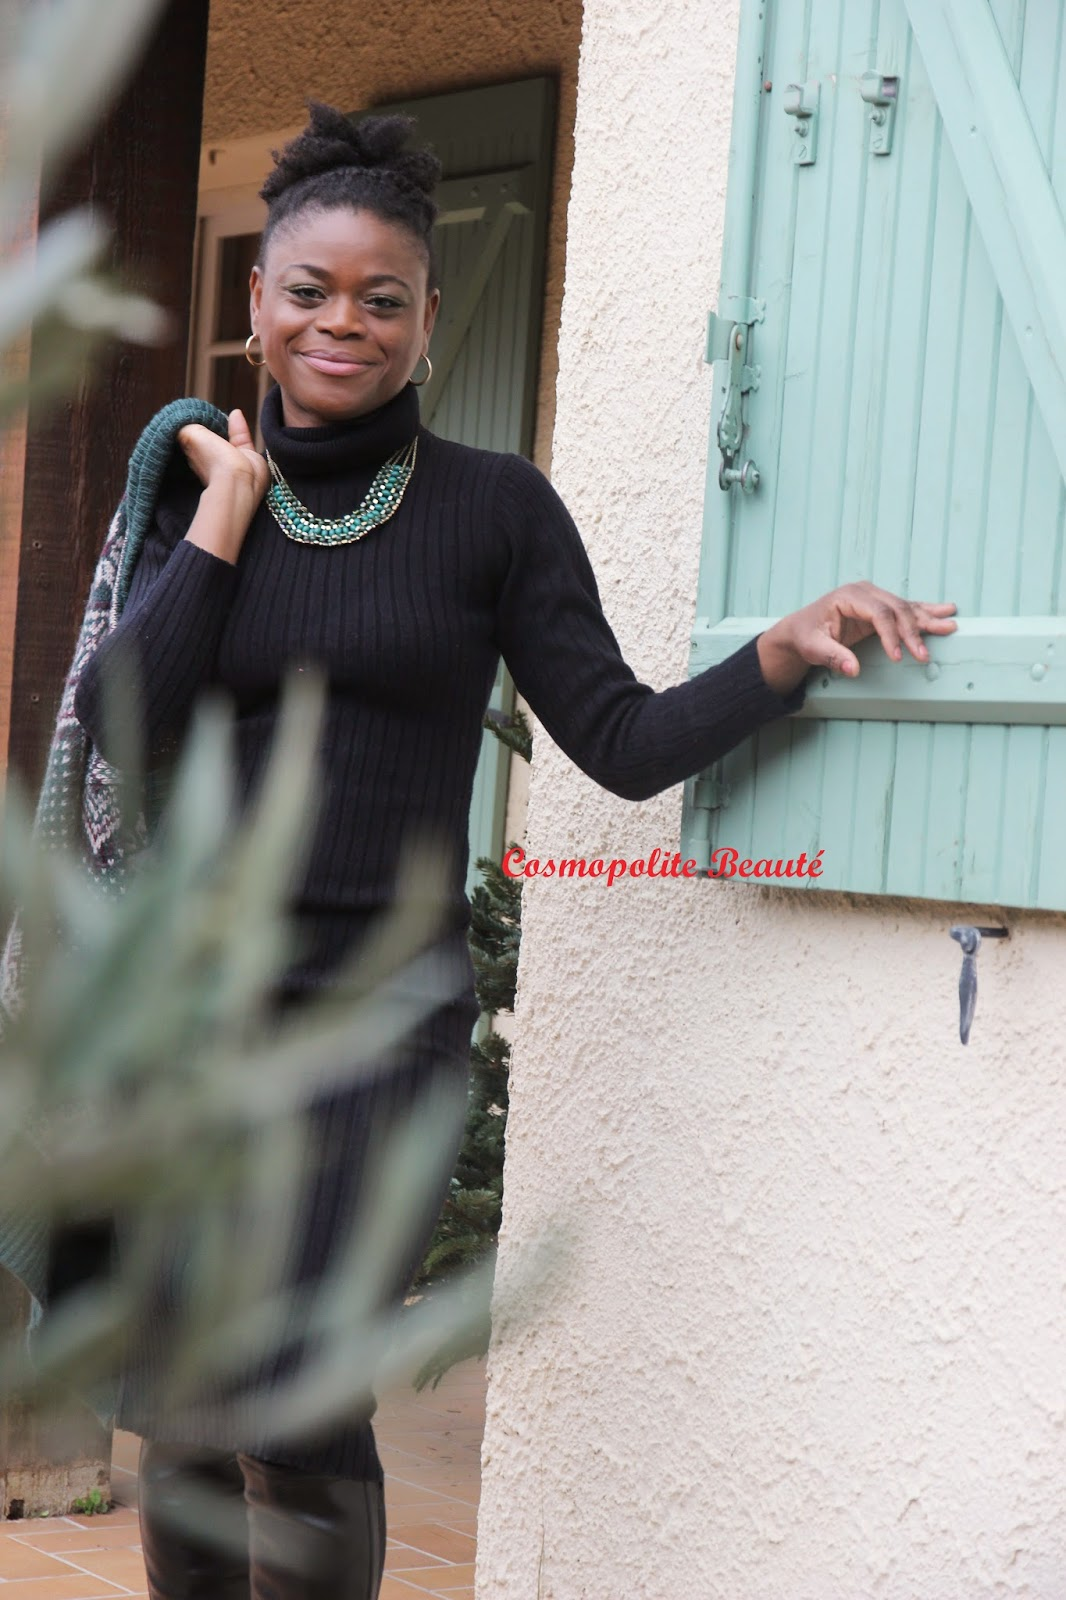 afro puff, high bun, cosmopolite beauté, lookbook, tenue, bottes, robe pull, robe chaussette